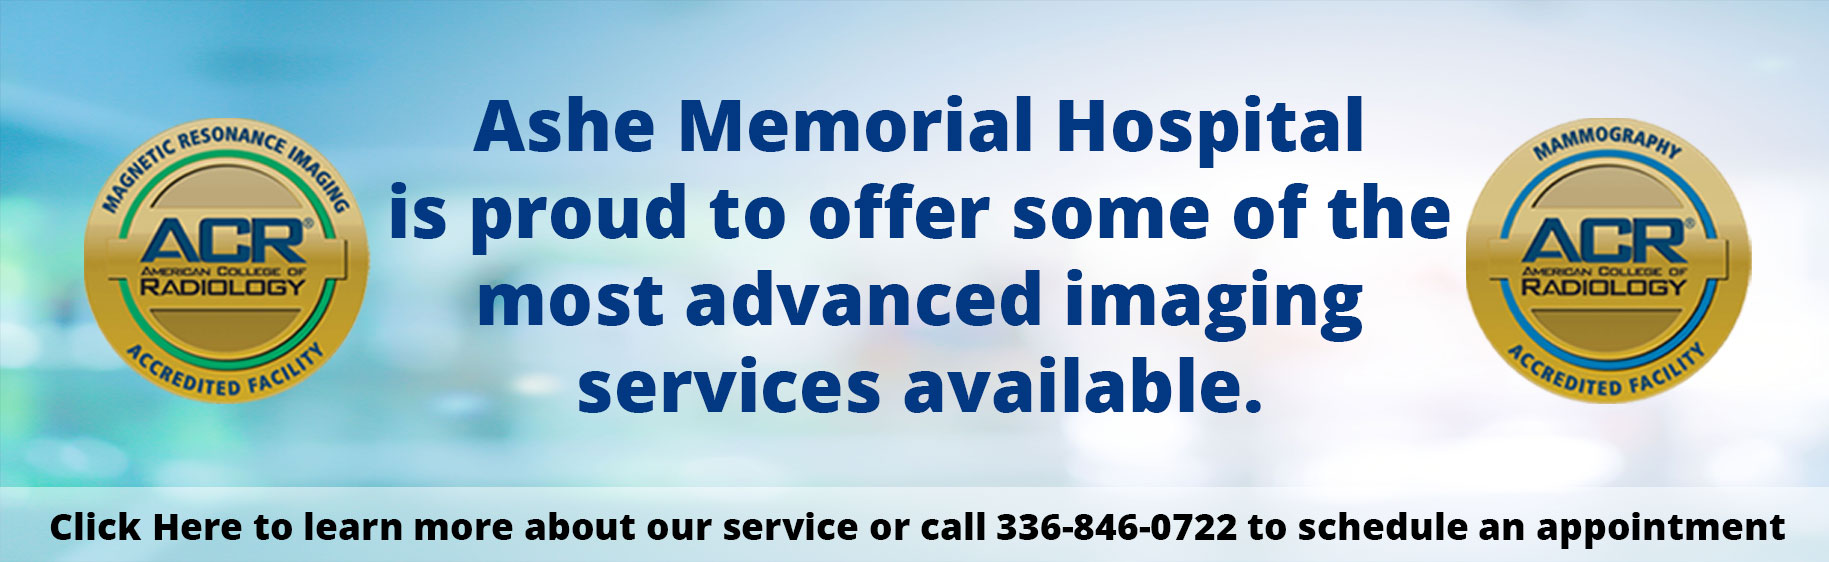 Ashe Memorial Hospital is proud to offer some of the most advnaced imaging services available. click here to learn more about our services or call 336-846-0722 to schedule an appointment.